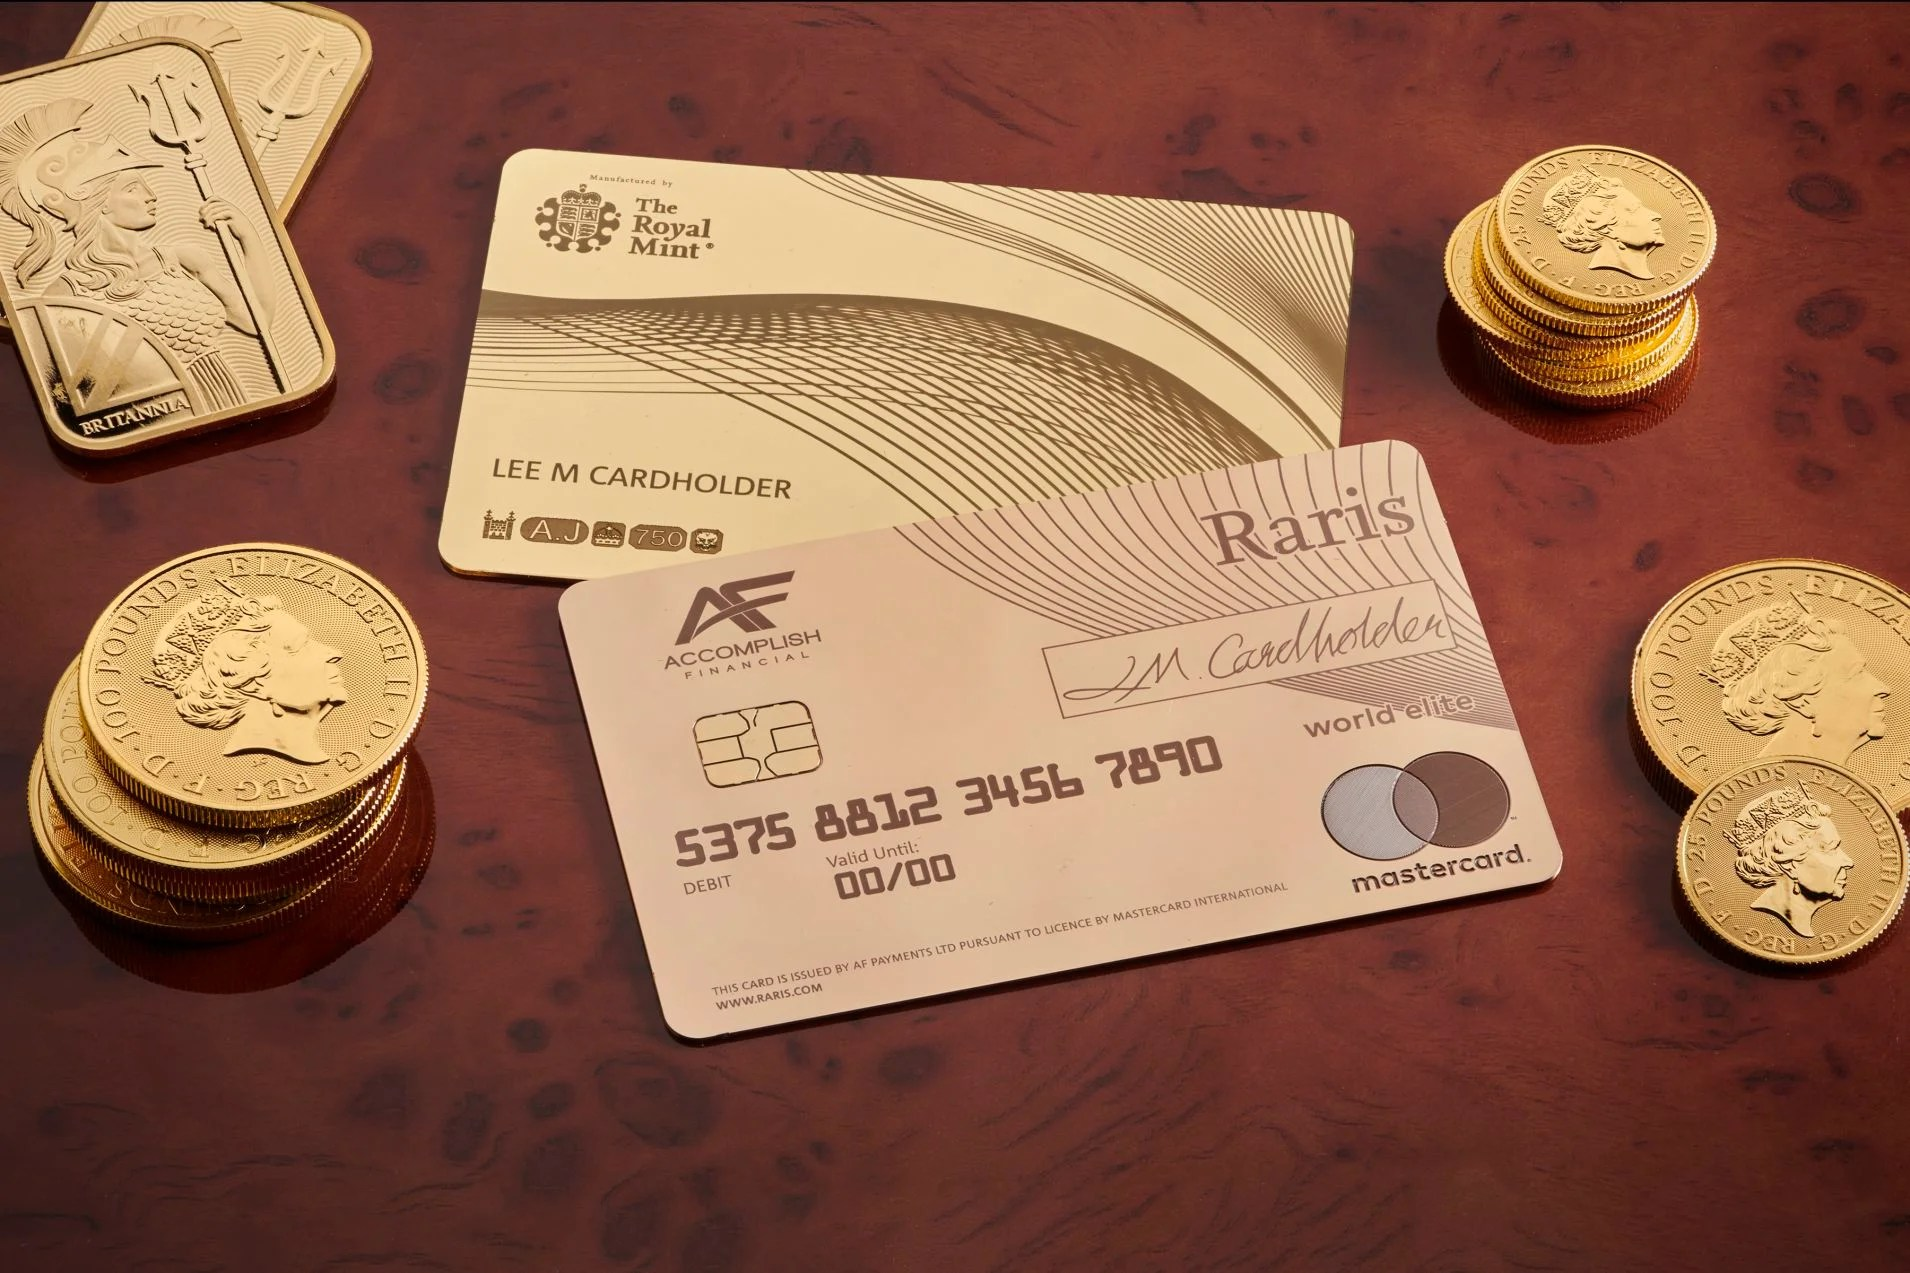 For $23k you can own the world's first 18-karat gold debit card — but we wouldn't recommend it